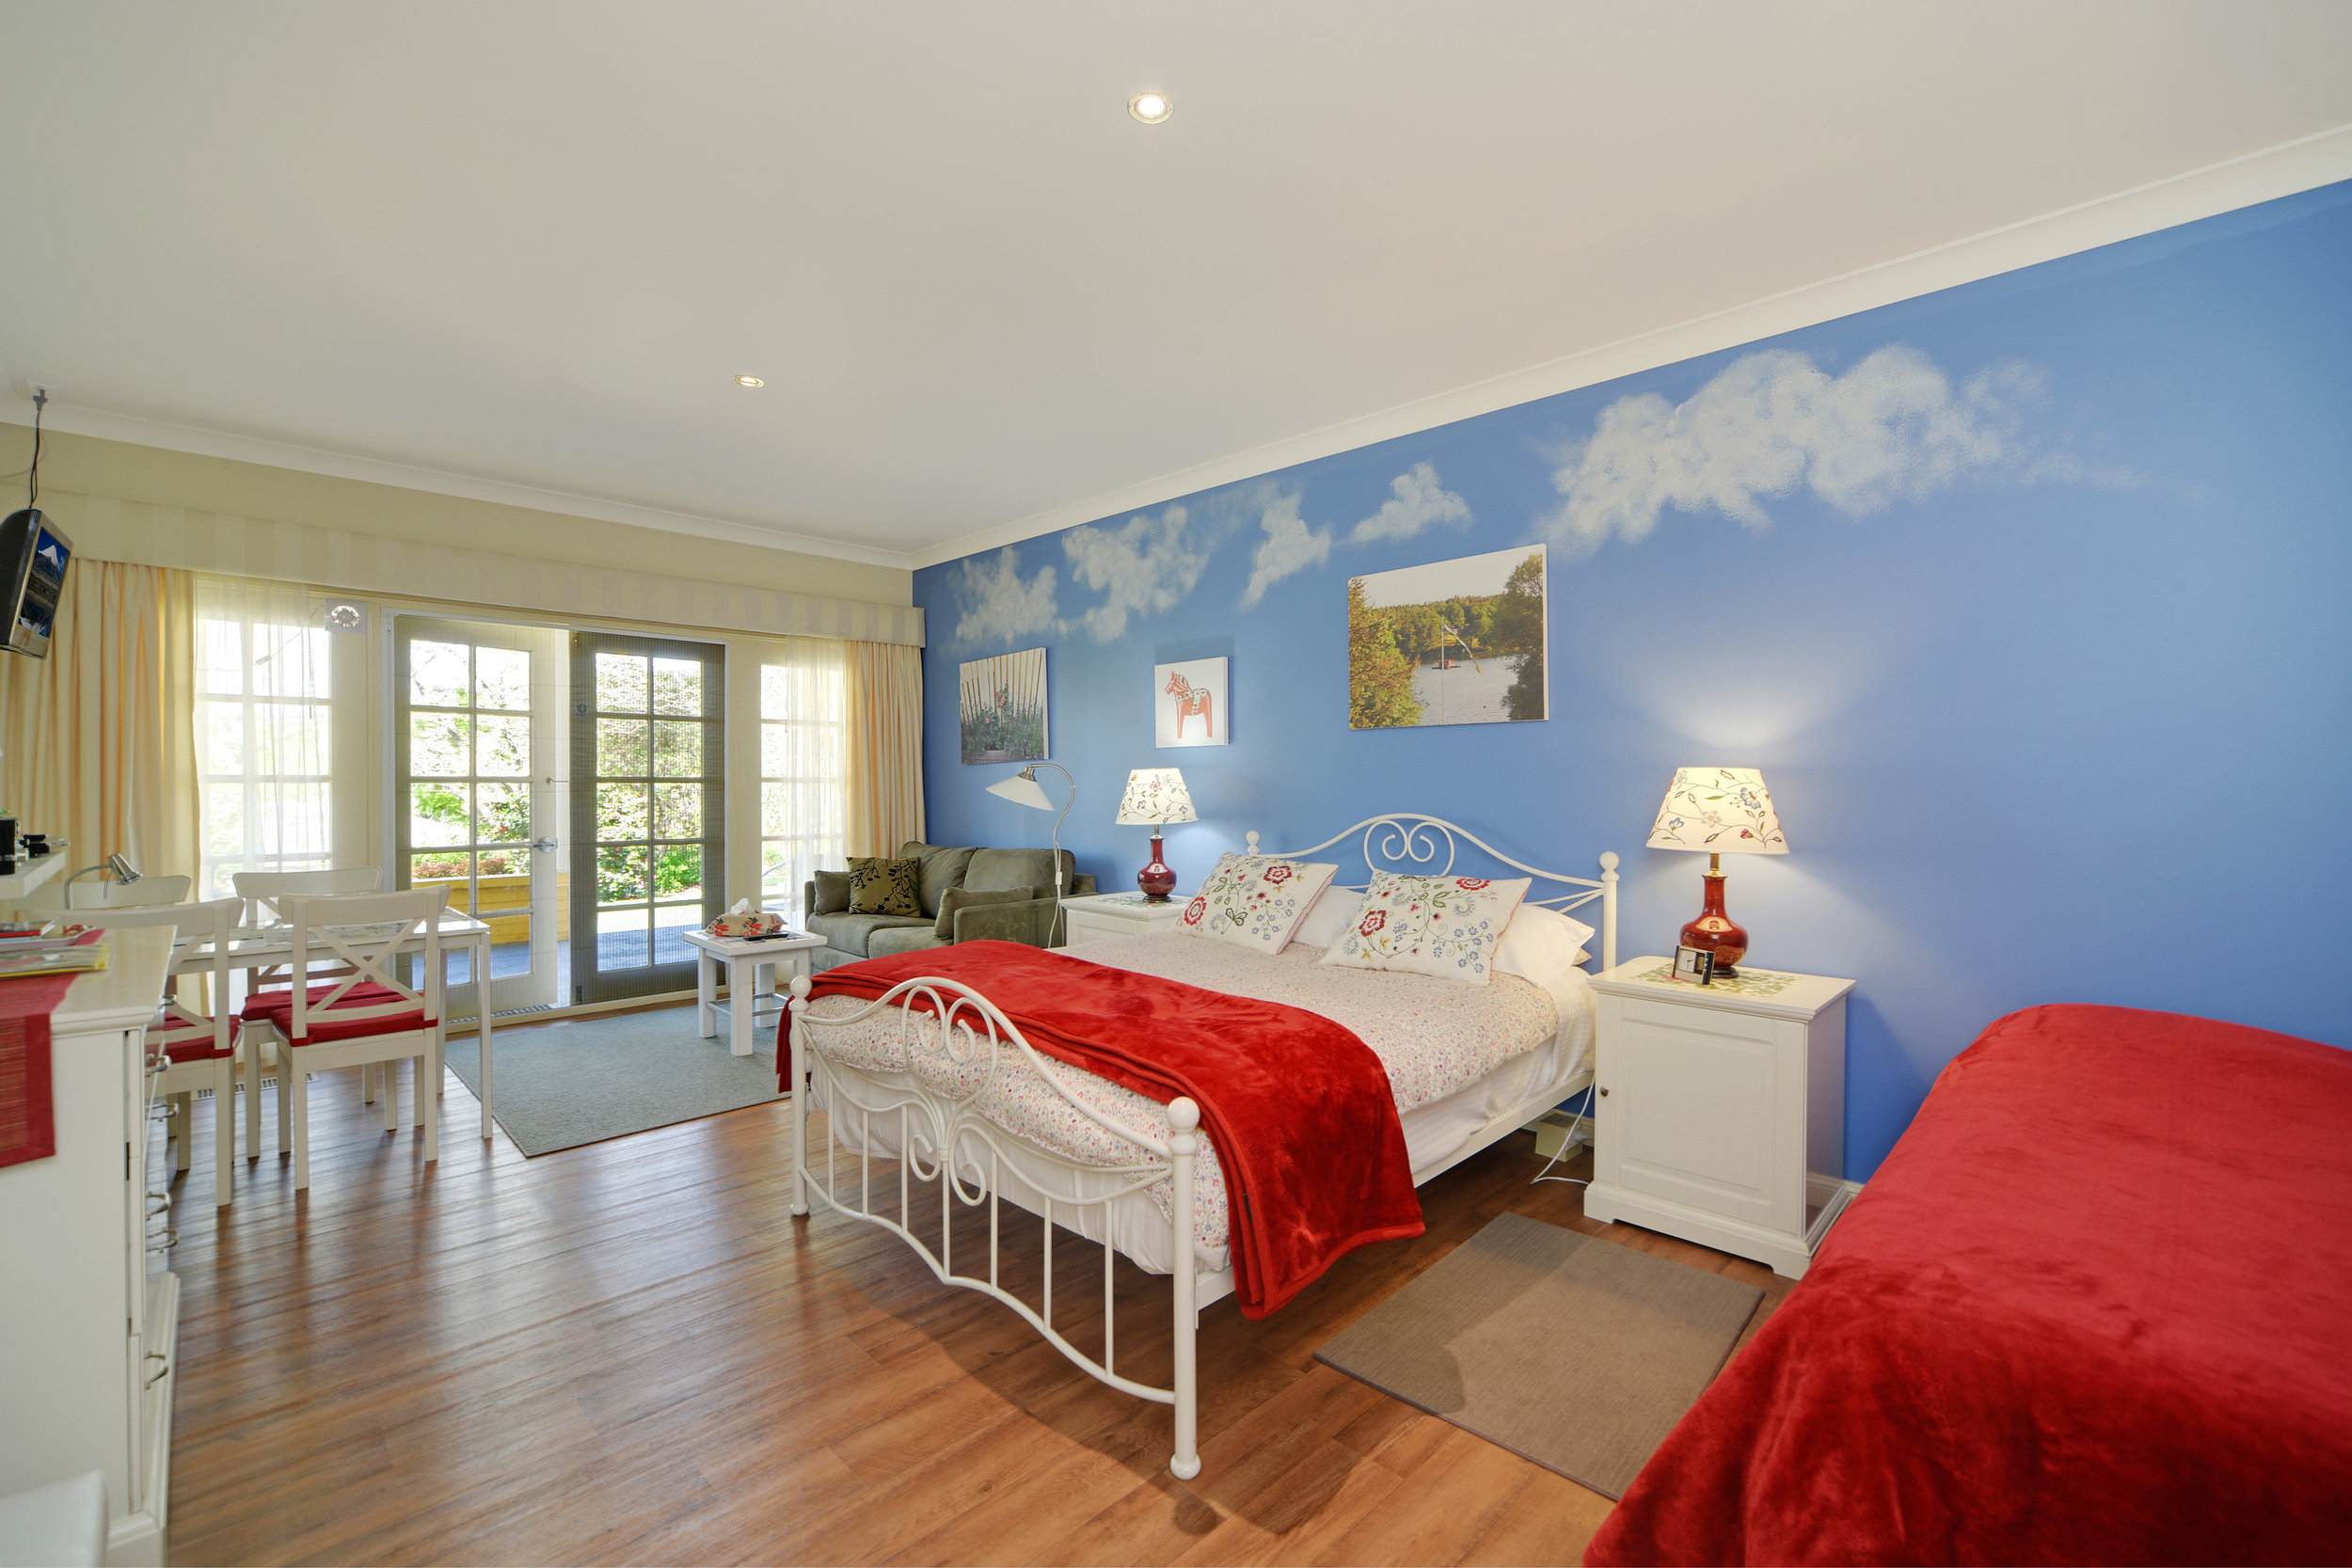 1 queen bed | 1 single bed | 1 sofa bed | max 4 people